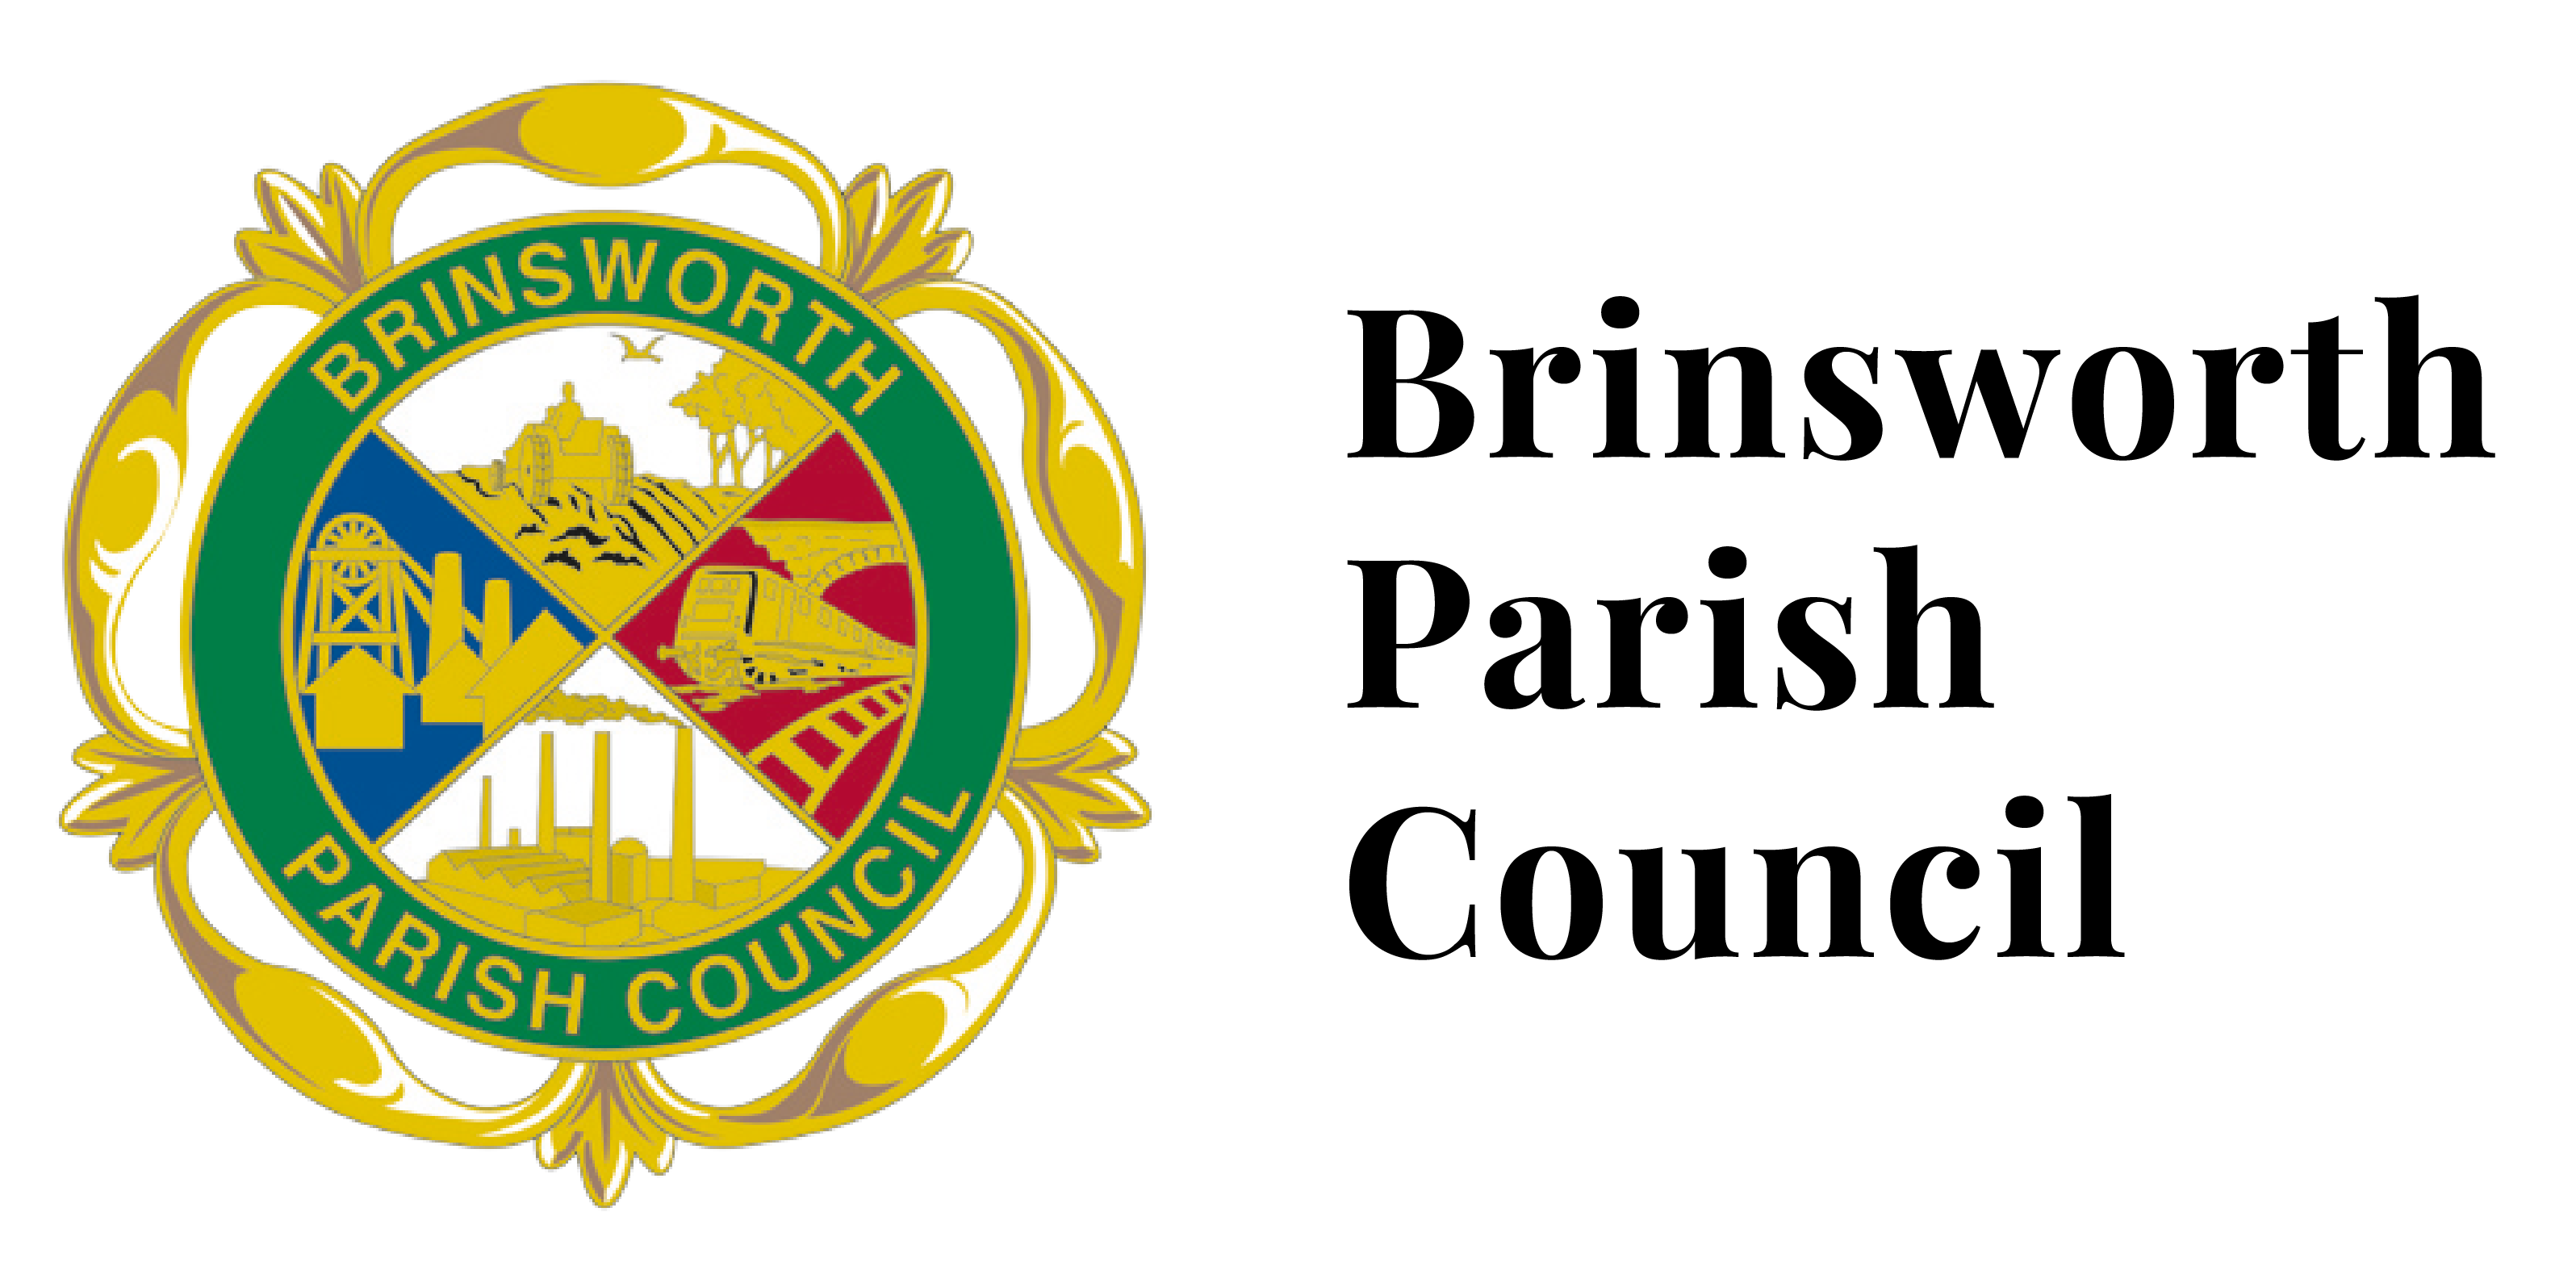 Brinsworth Parish Council